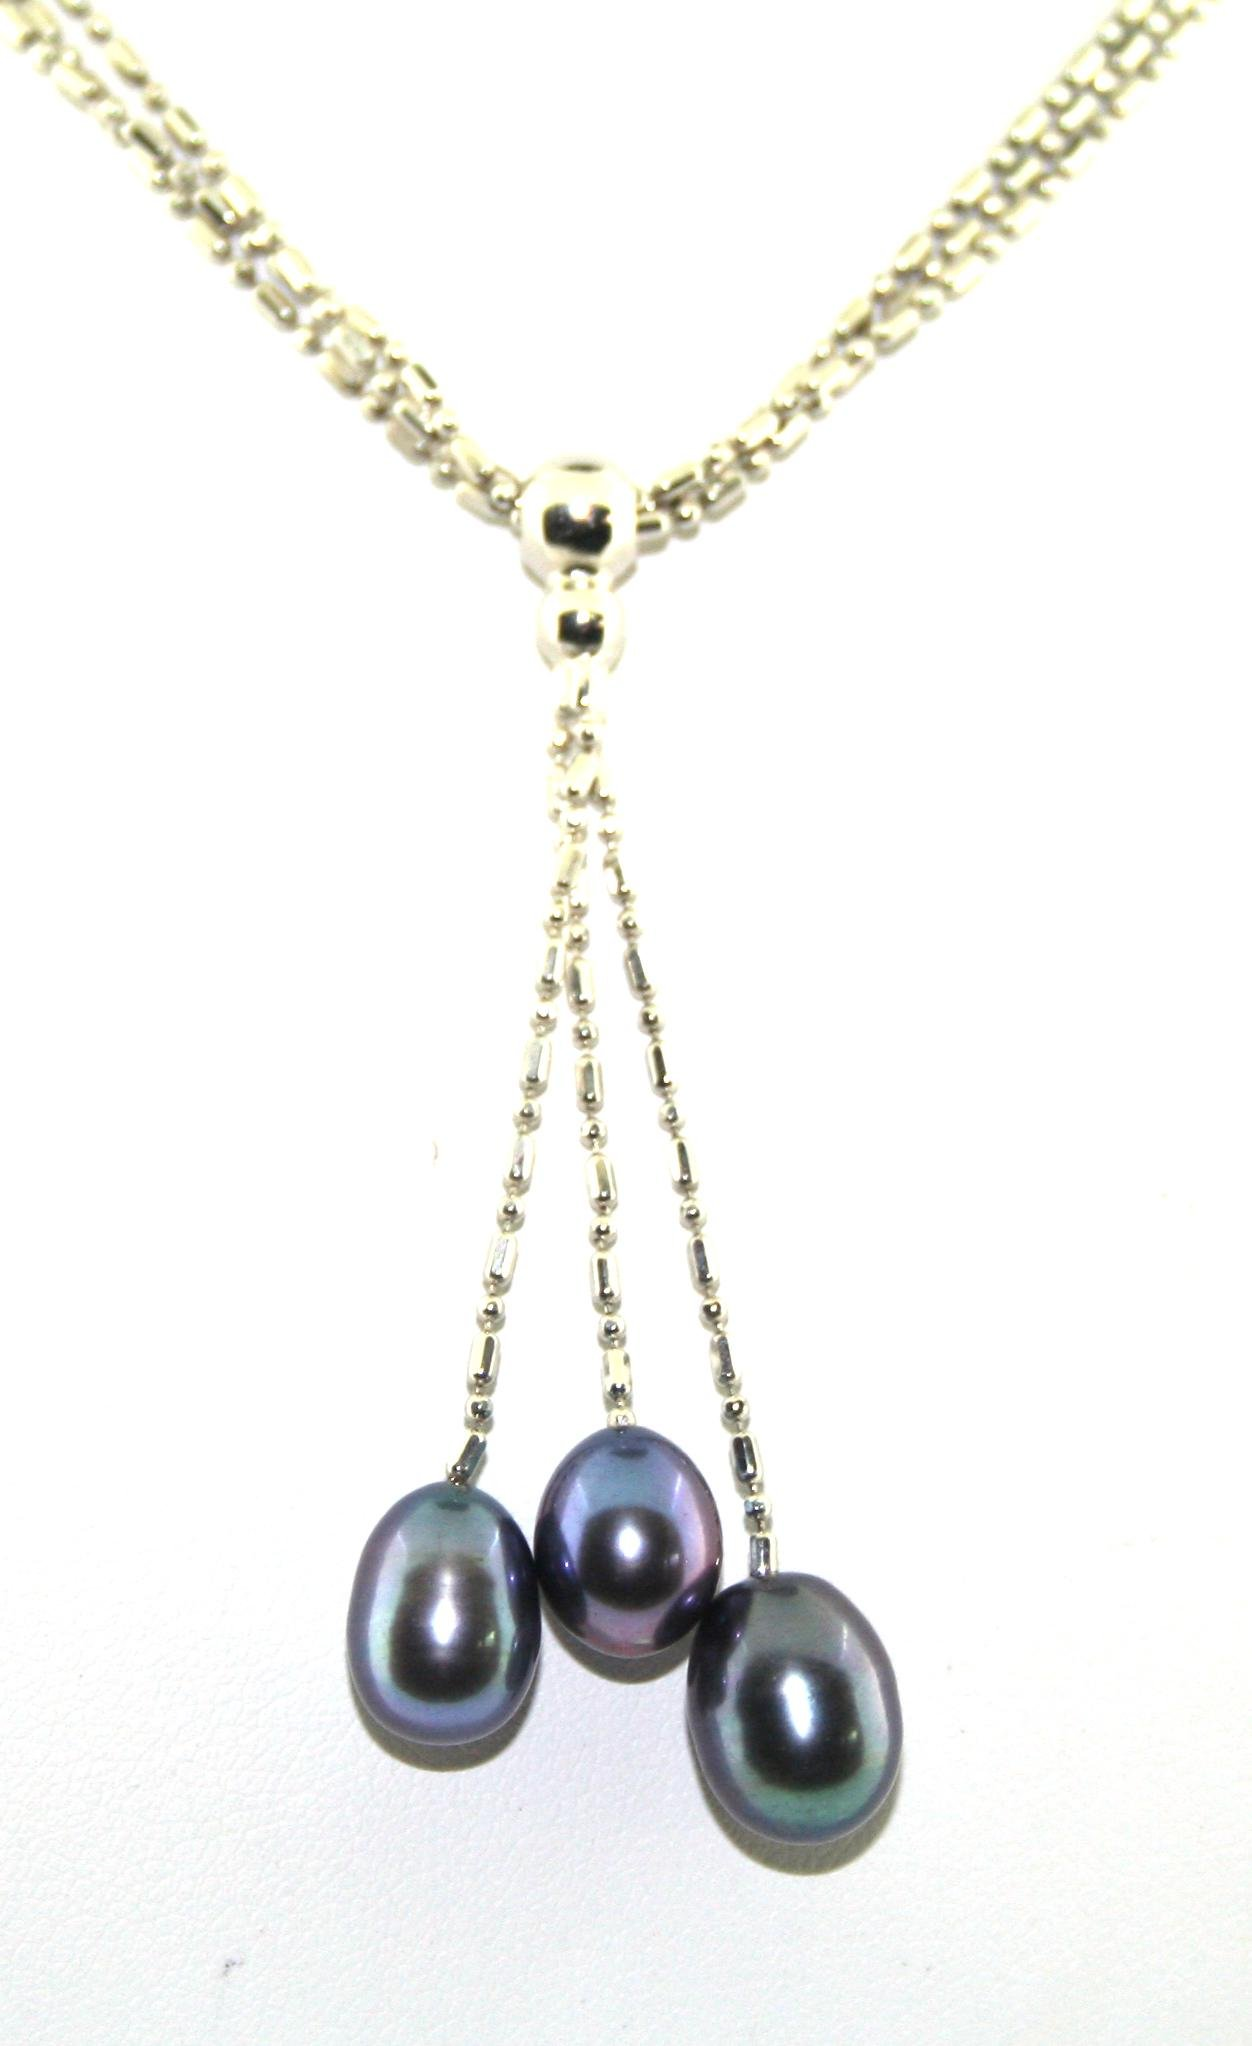 16 Inch Pearl & Silver 10MM Necklace